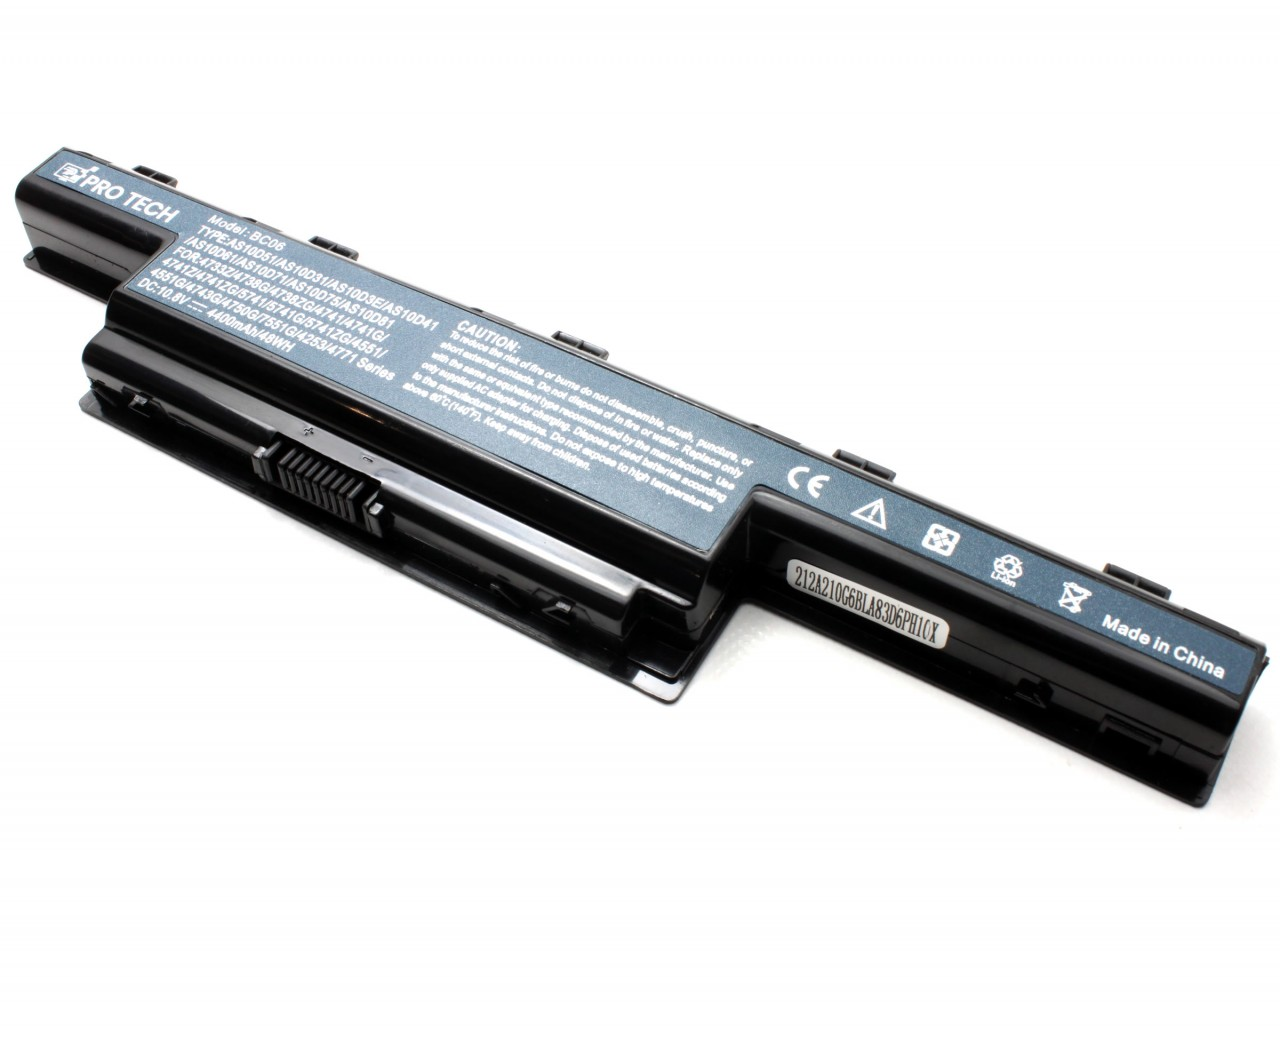 Baterie Packard Bell EasyNote LM87 6 celule imagine powerlaptop.ro 2021